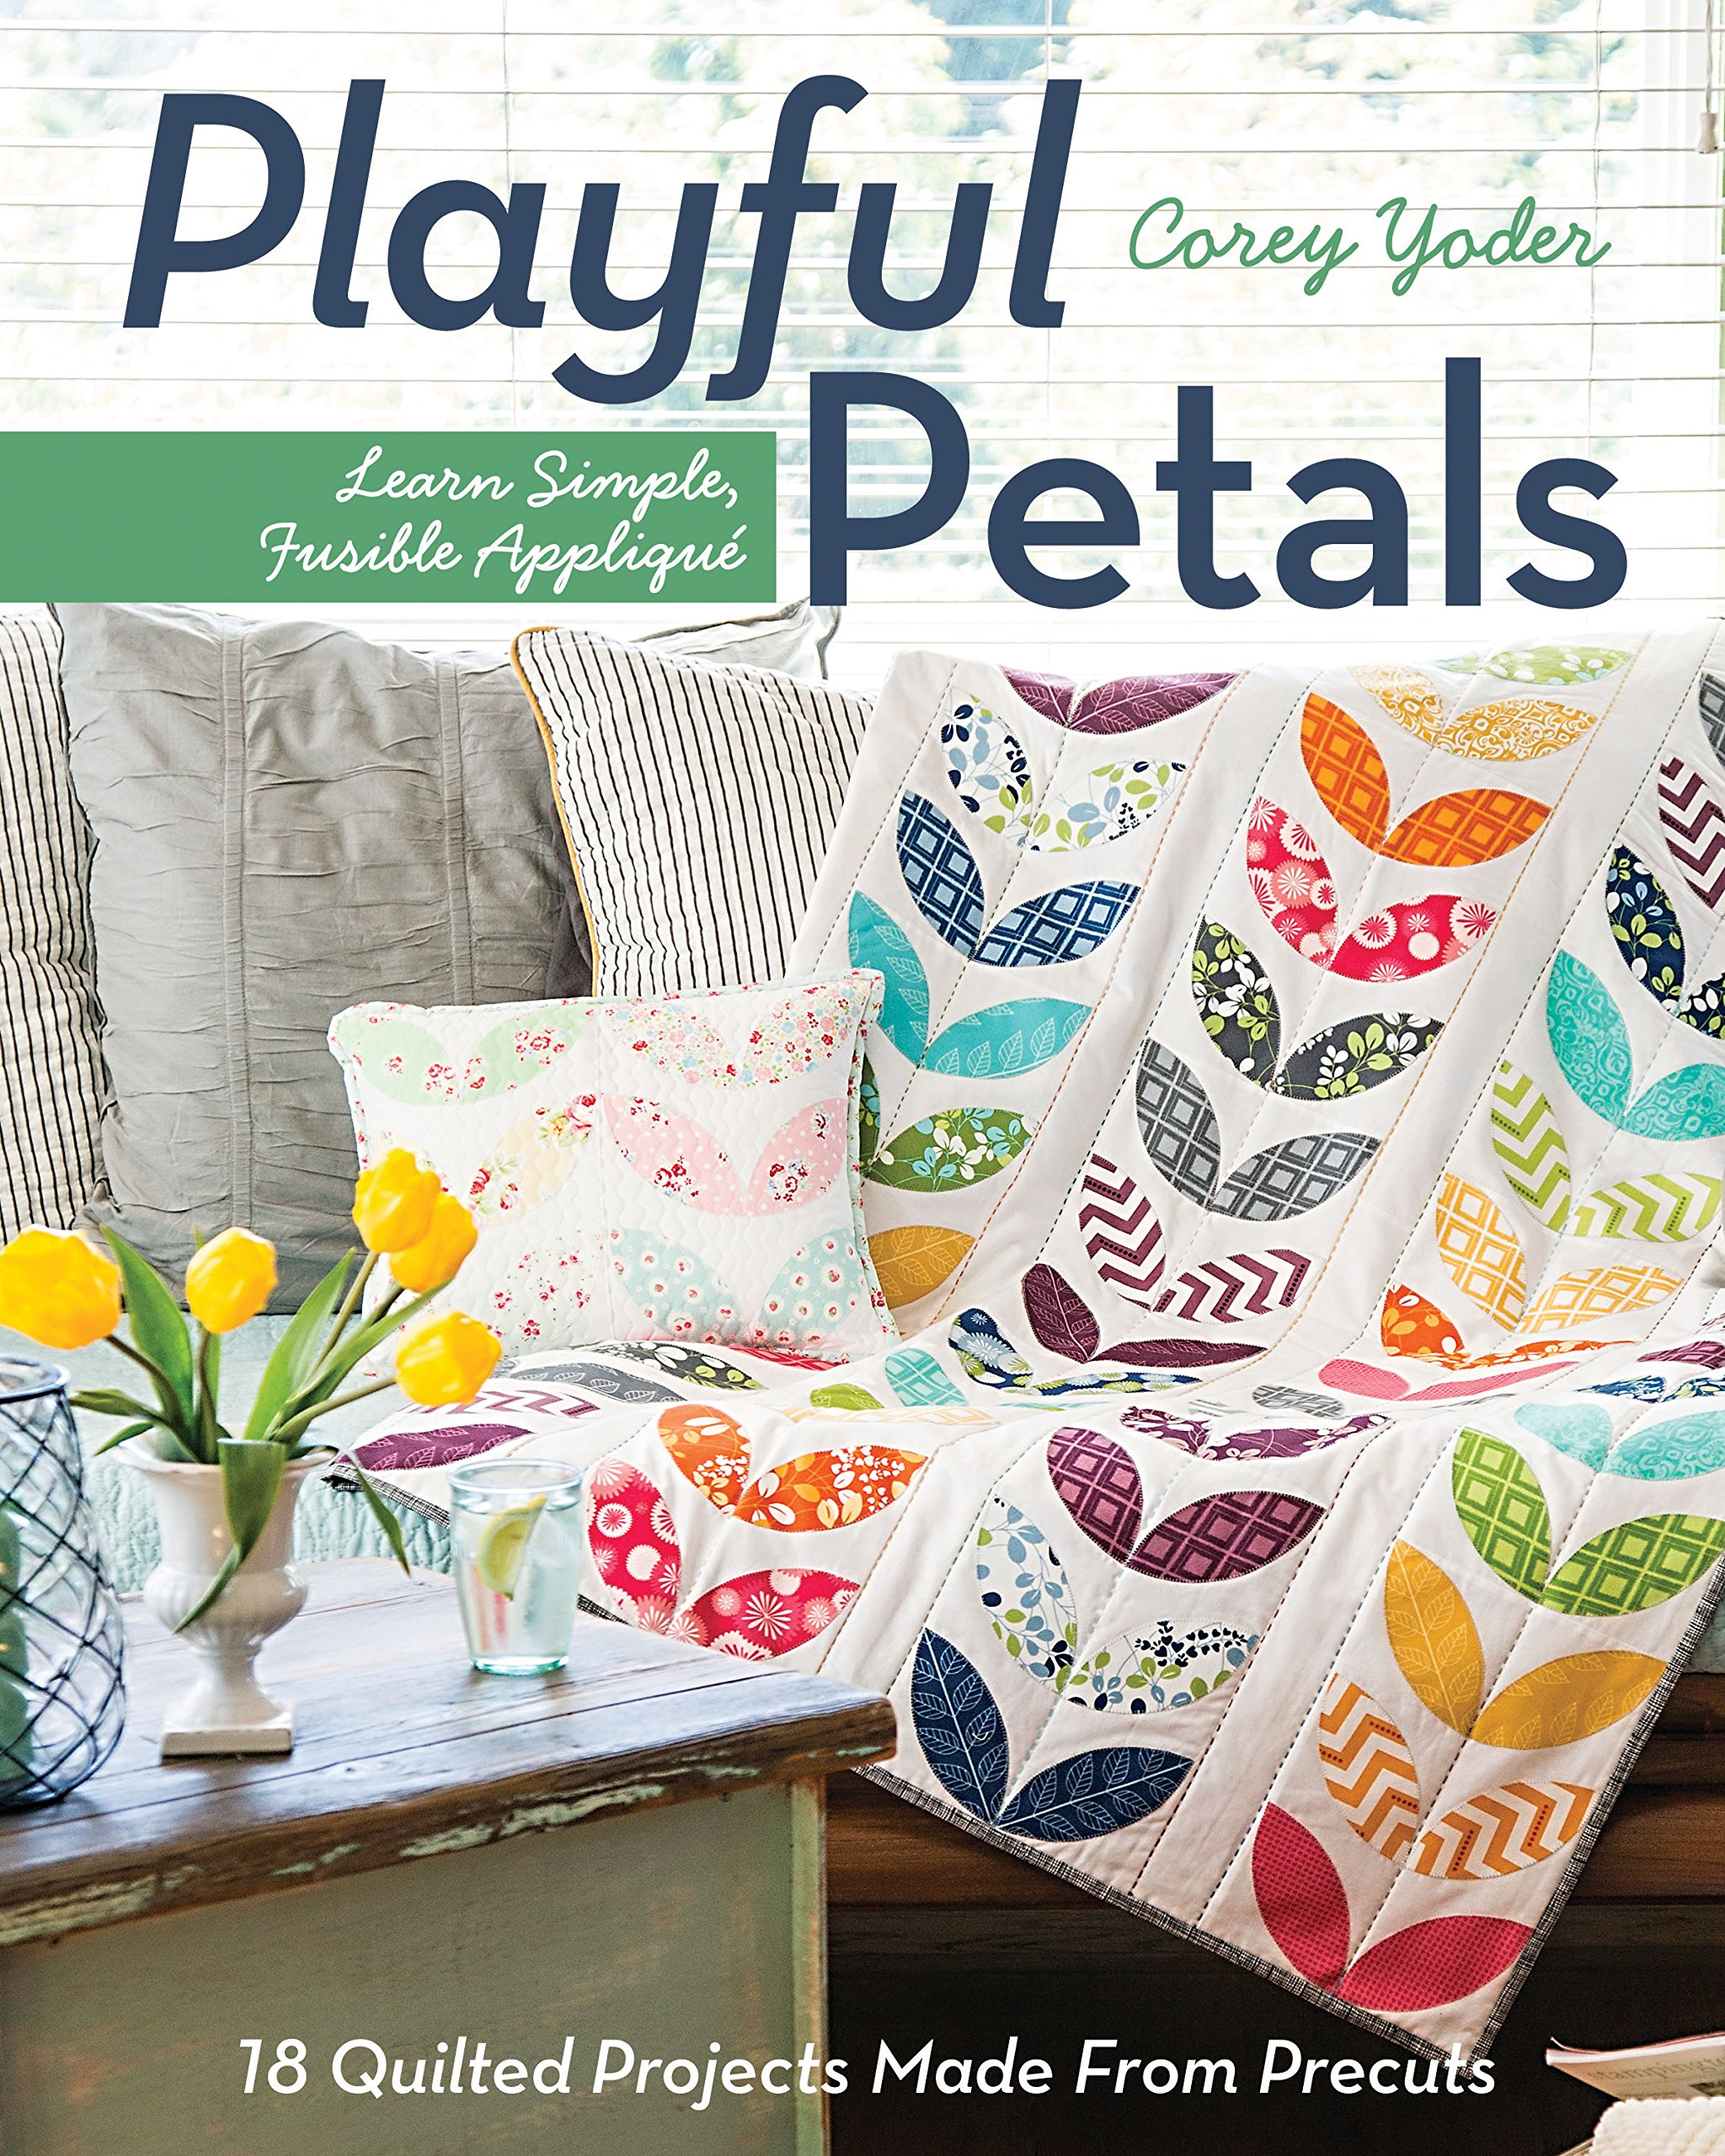 Playful Petals: Learn Simple, Fusible Applique * 18 Quilted Projects Made from Precuts